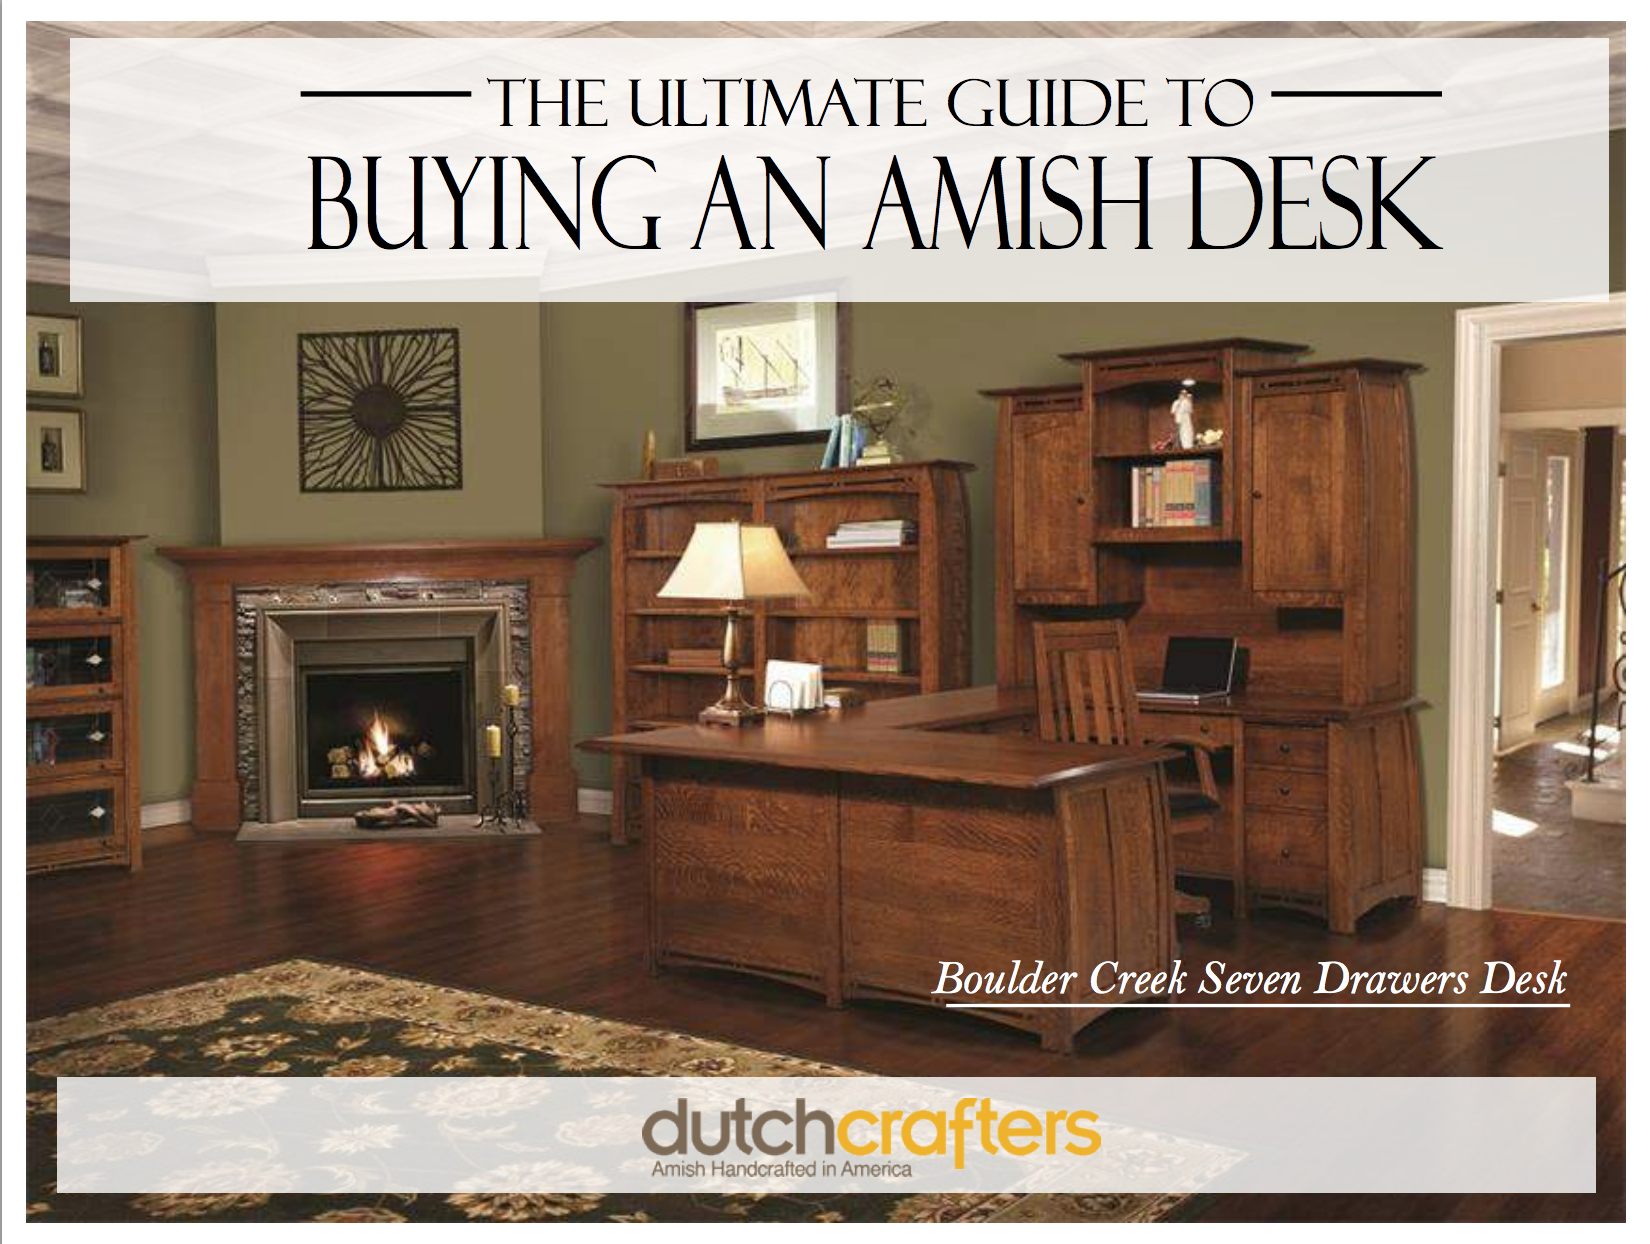 The Ultimate Guide to Buying an Amish Desk